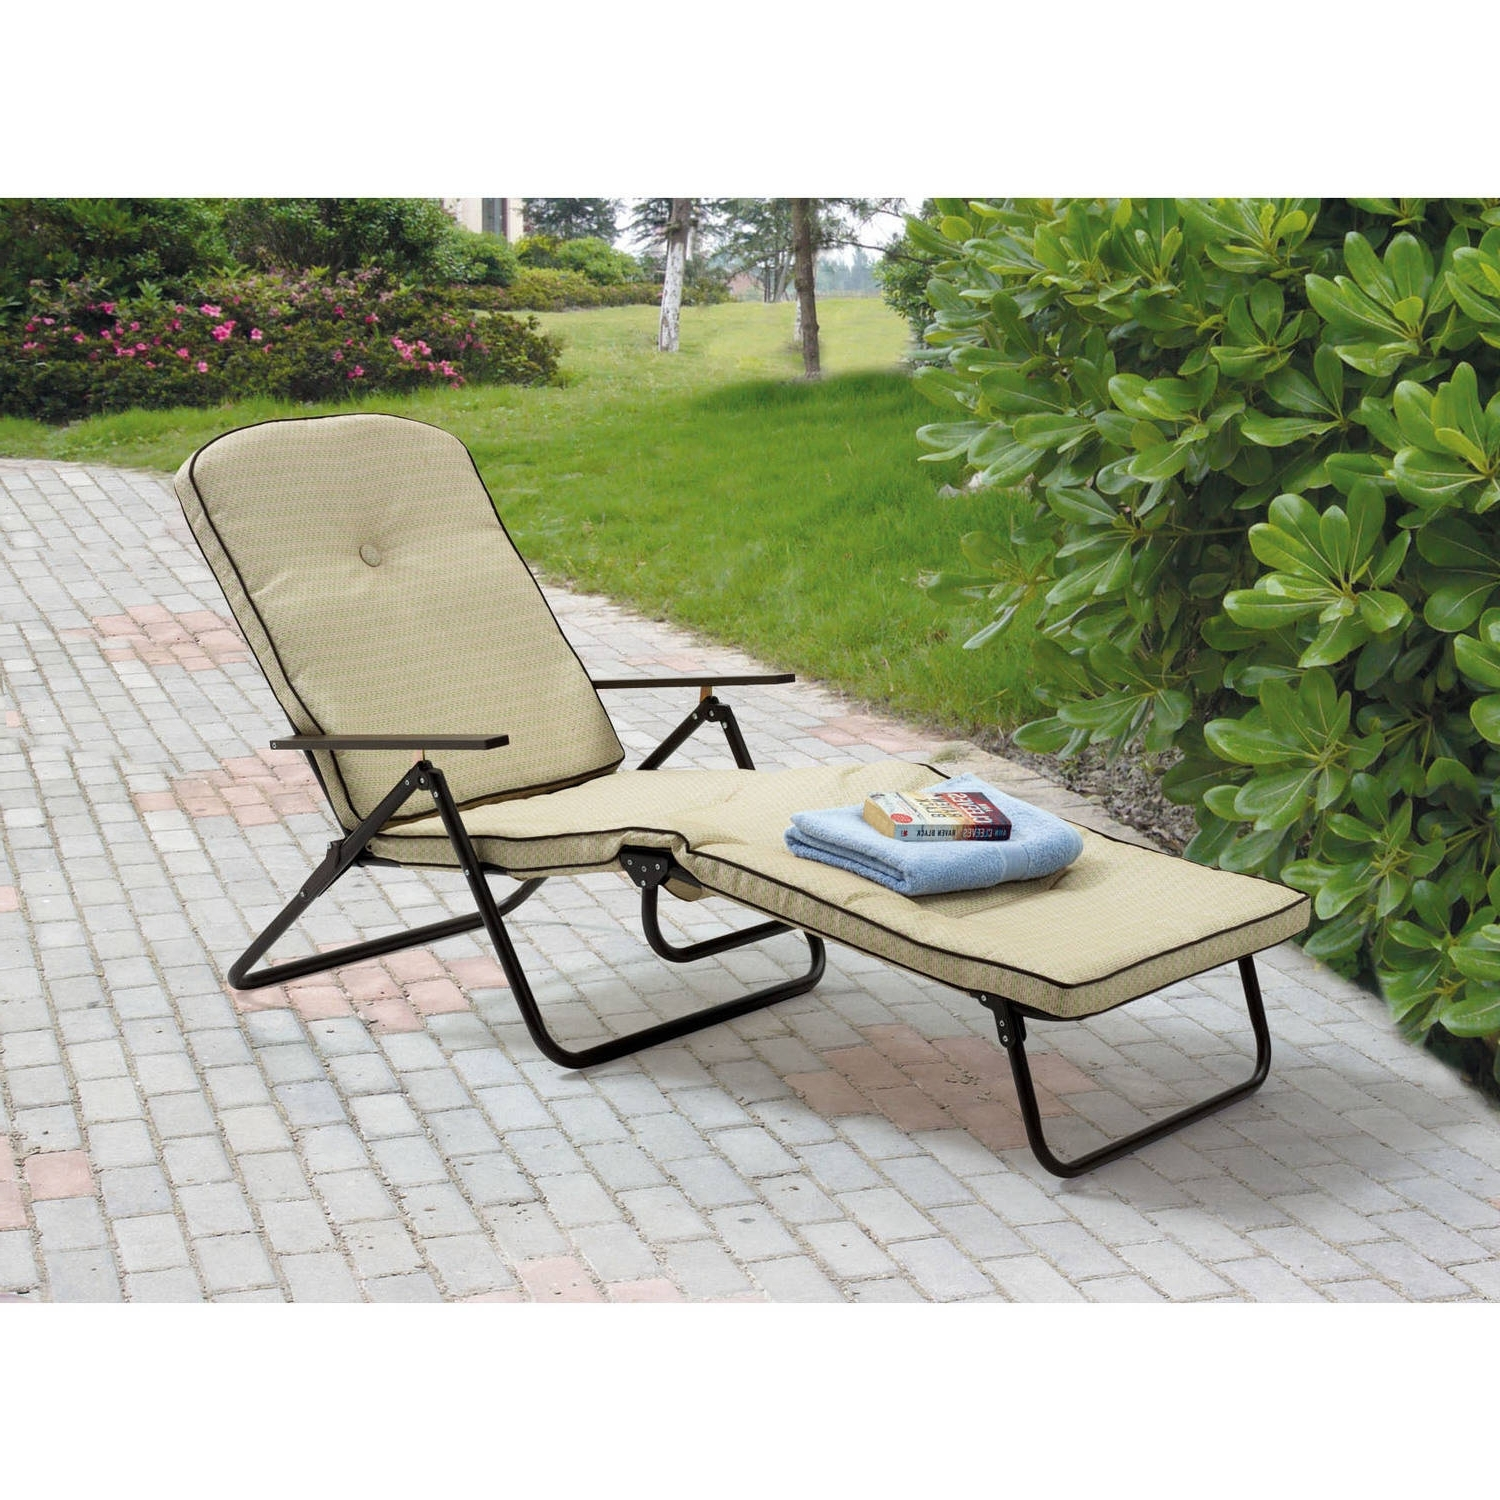 Latest Mainstays Sand Dune Outdoor Padded Folding Chaise Lounge, Tan Throughout Folding Chaise Lounge Lawn Chairs (View 11 of 15)